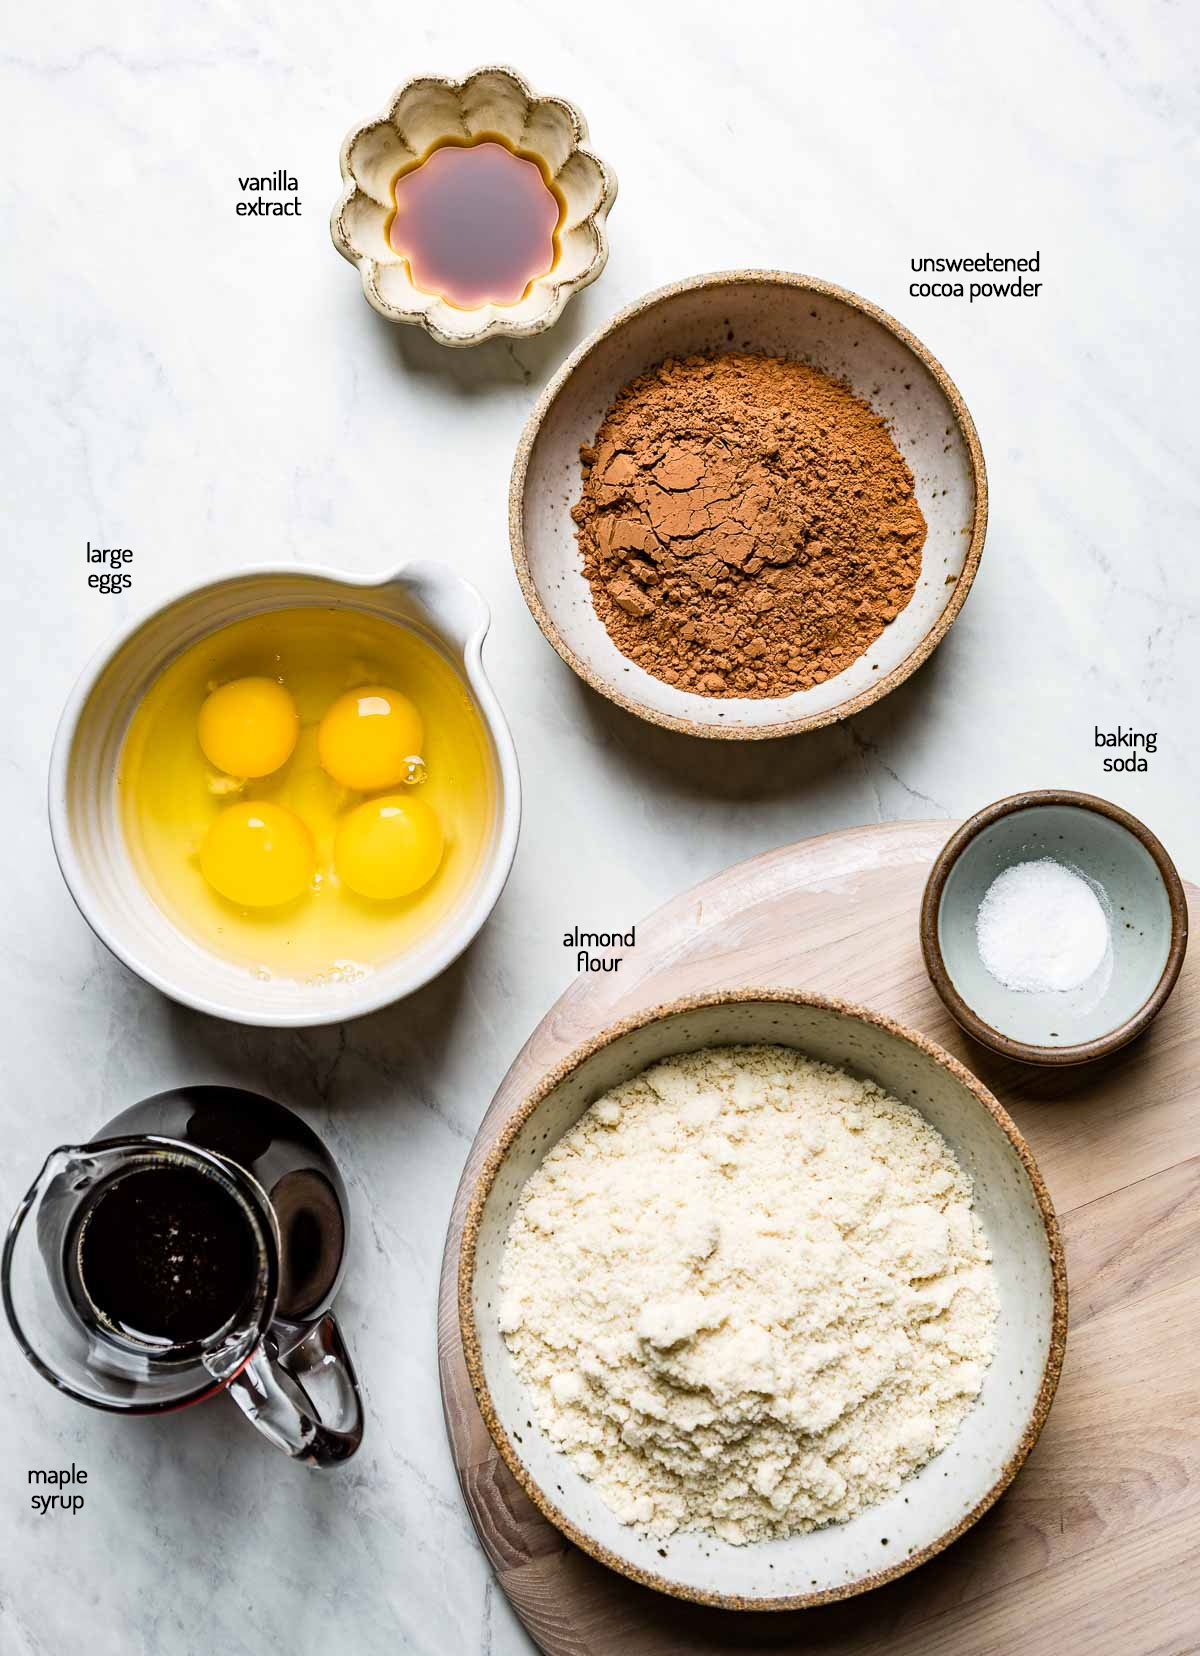 Ingredients for the recipe are laid out